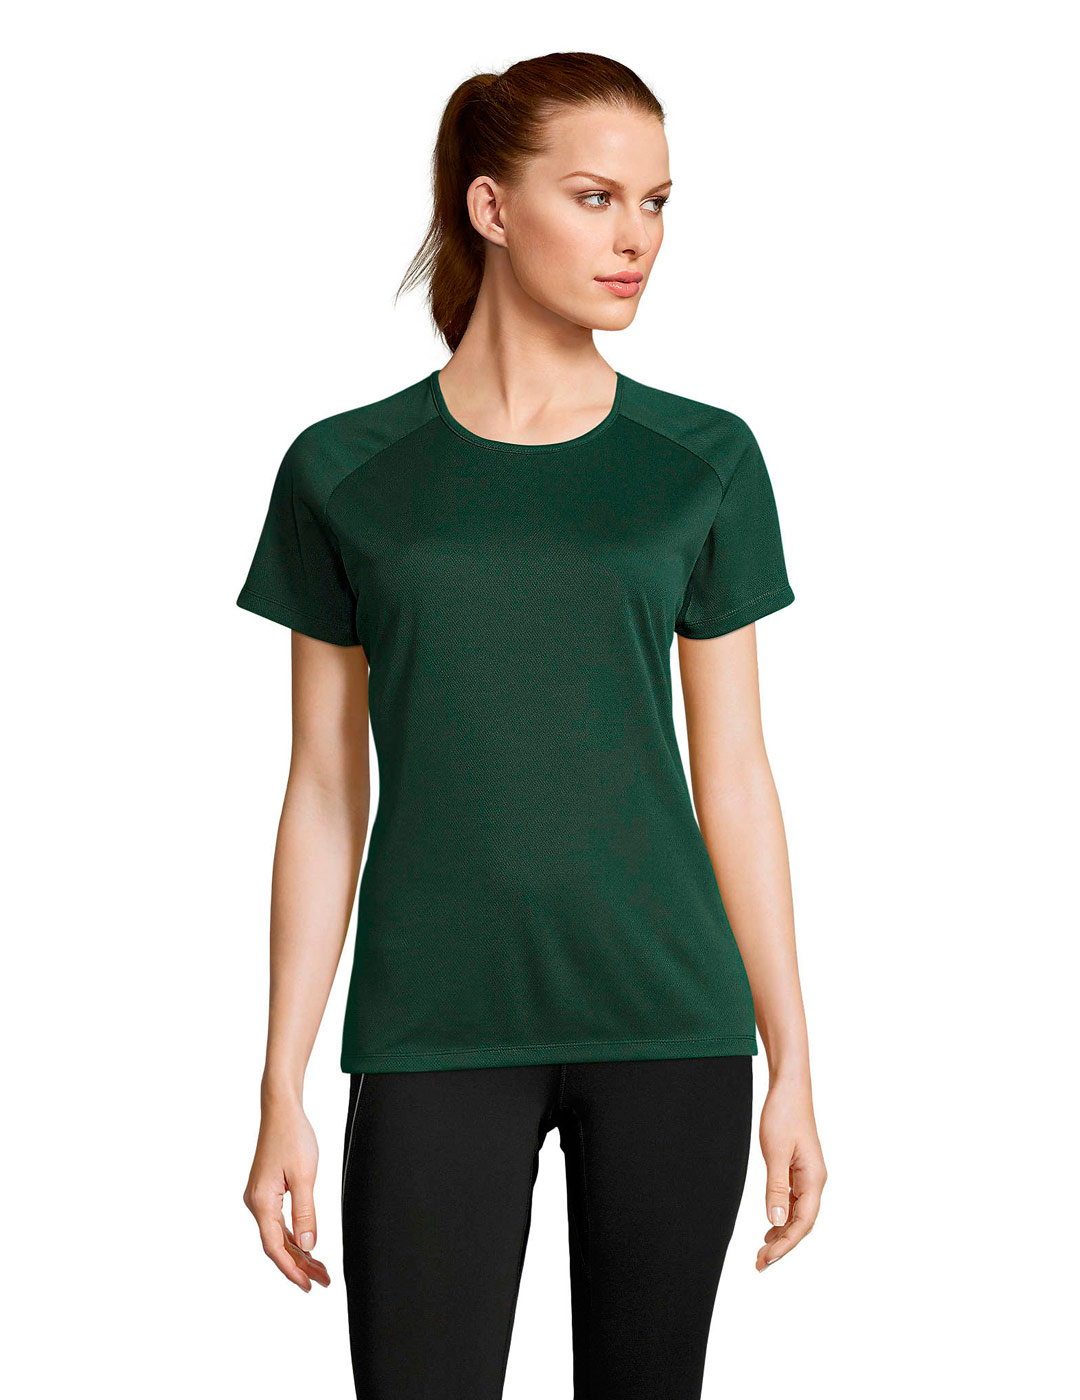 Sporty mujer verde bosque 1